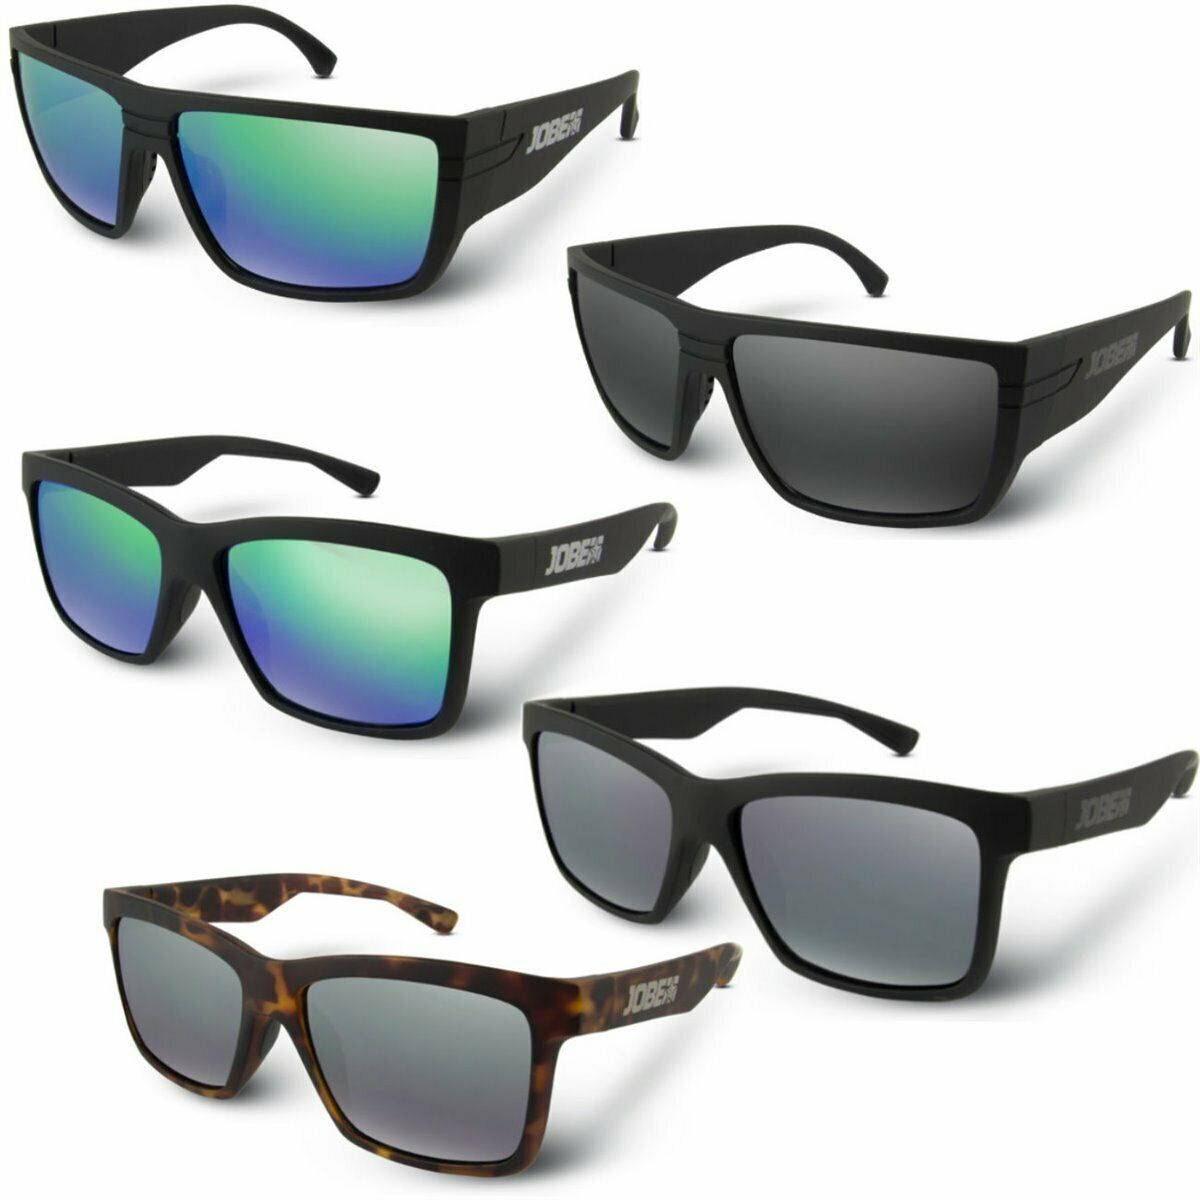 Jobe Sunglasses Glasses Floats Men's Glasses Polarised Glasses uv 400